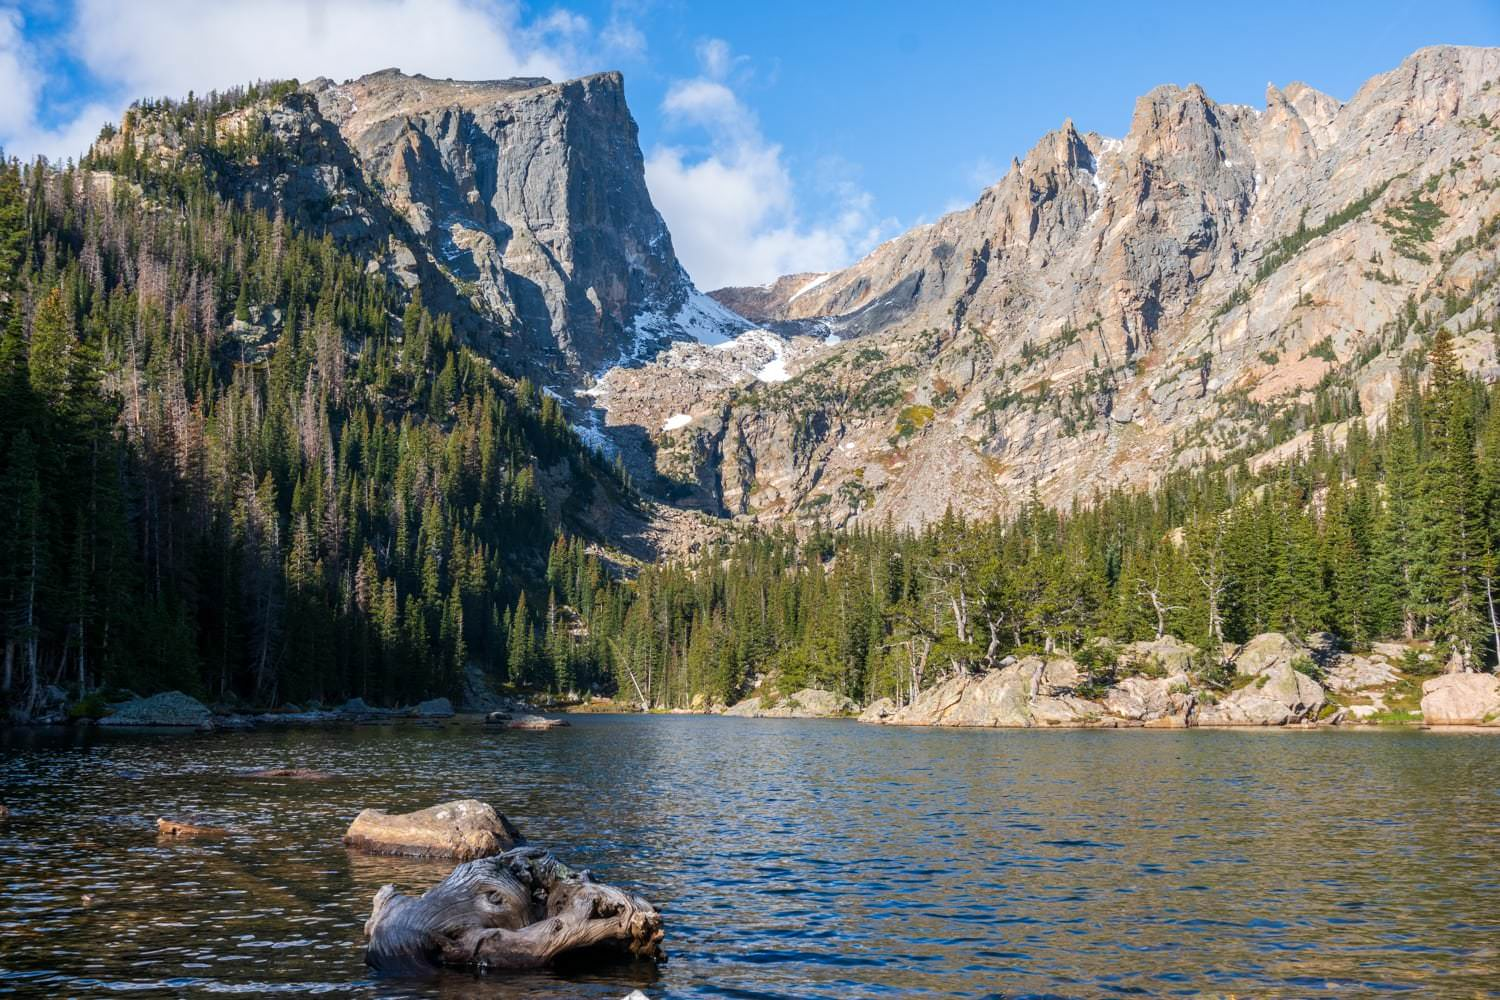 Bear Lake Rocky Mountain National Park Elopement Location